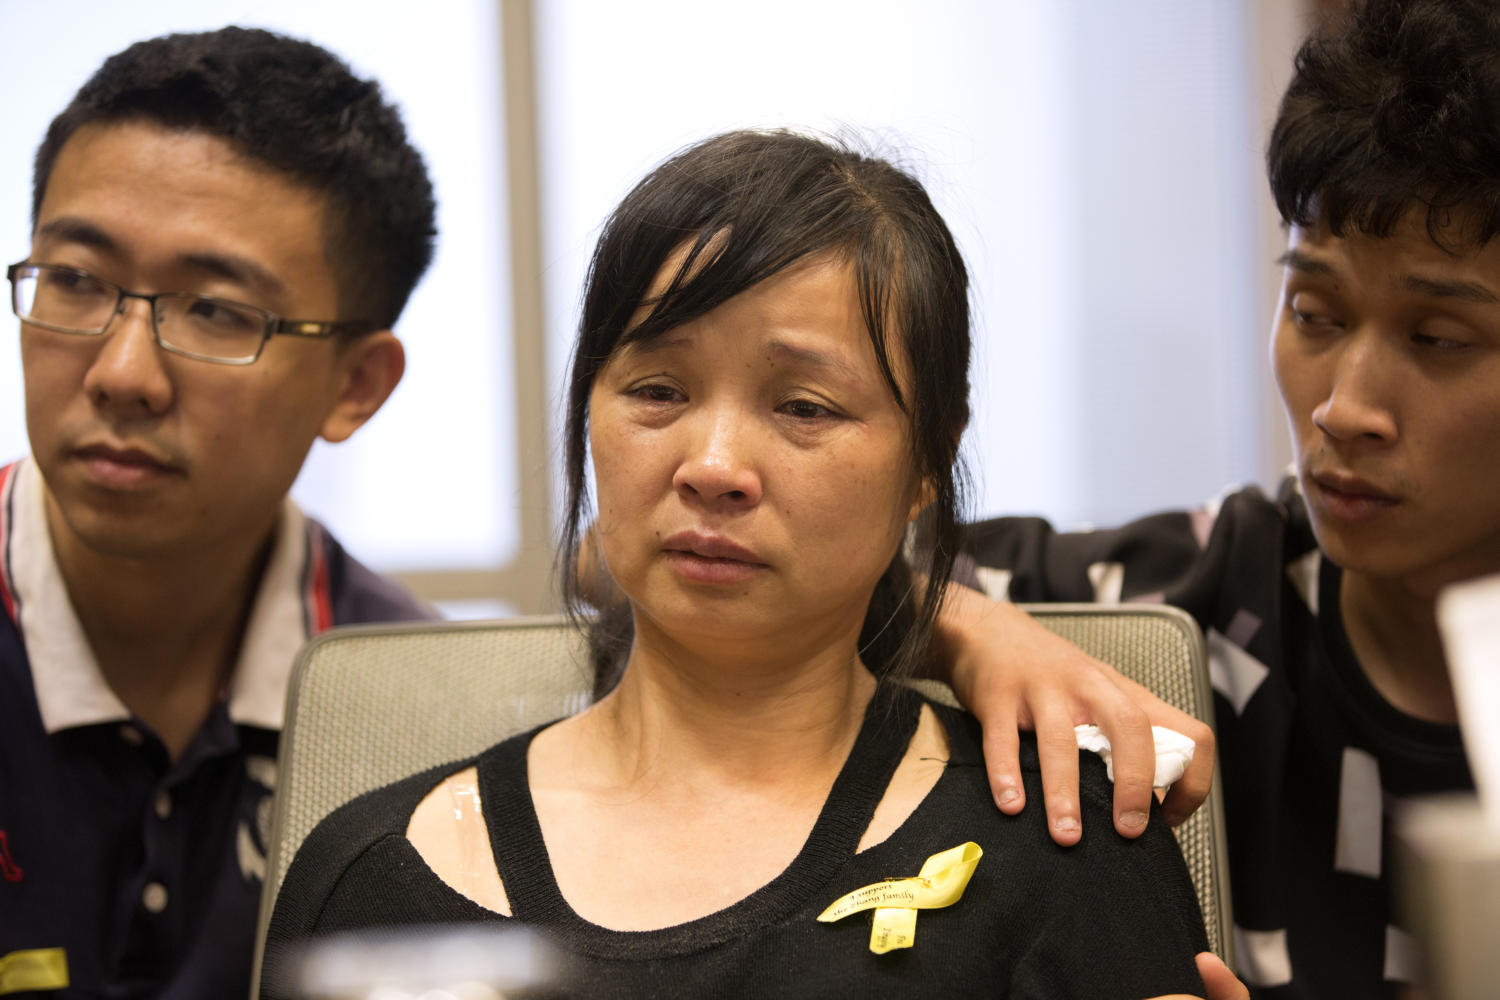 Lifeng Ye, mother of Yingying Zhang, a visiting scholar at the University of Illinois at Urbana-Champaign who authorities say was kidnapped near a bus stop on campus June 9, sits with her son Xinyang Zhang, right, and Xiaolin Hou, Yingying's boyfriend, after a news conference at the I Hotel and Conference Center in Champaign, Ill., on Tuesday, Aug. 22, 2017. (Erin Hooley/Chicago Tribune/TNS)